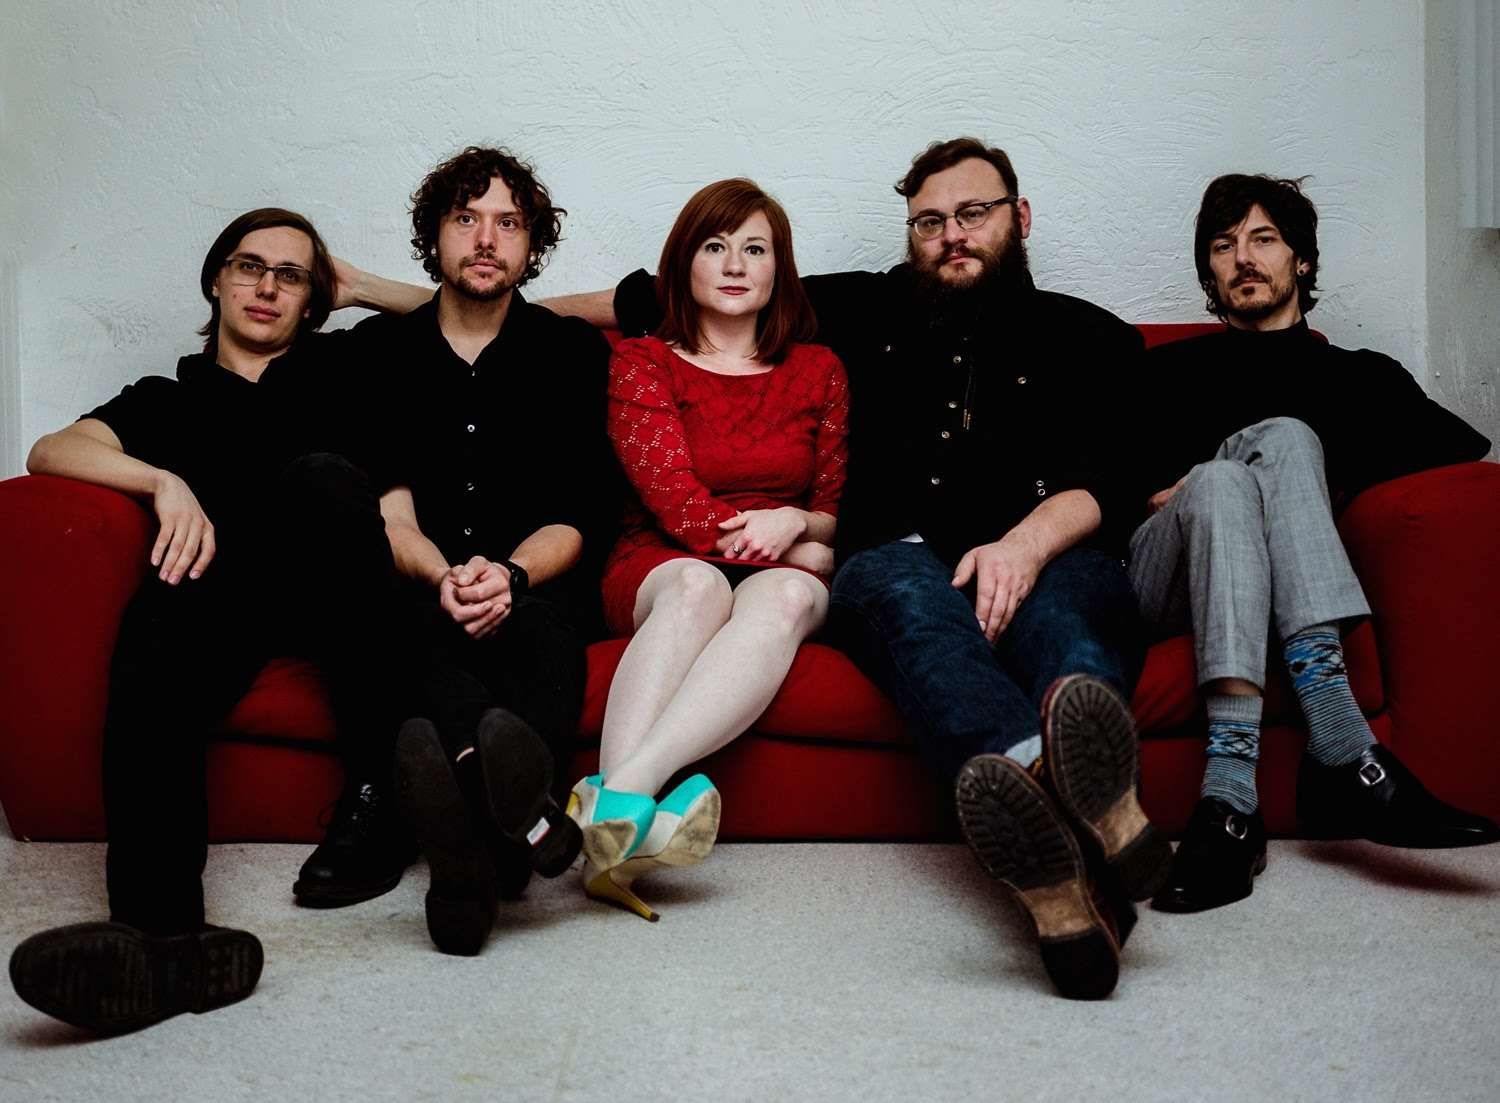 """Northern Transmissions' 'Song of the Day' is """"Dead Presidents"""" by The Modern Savage"""